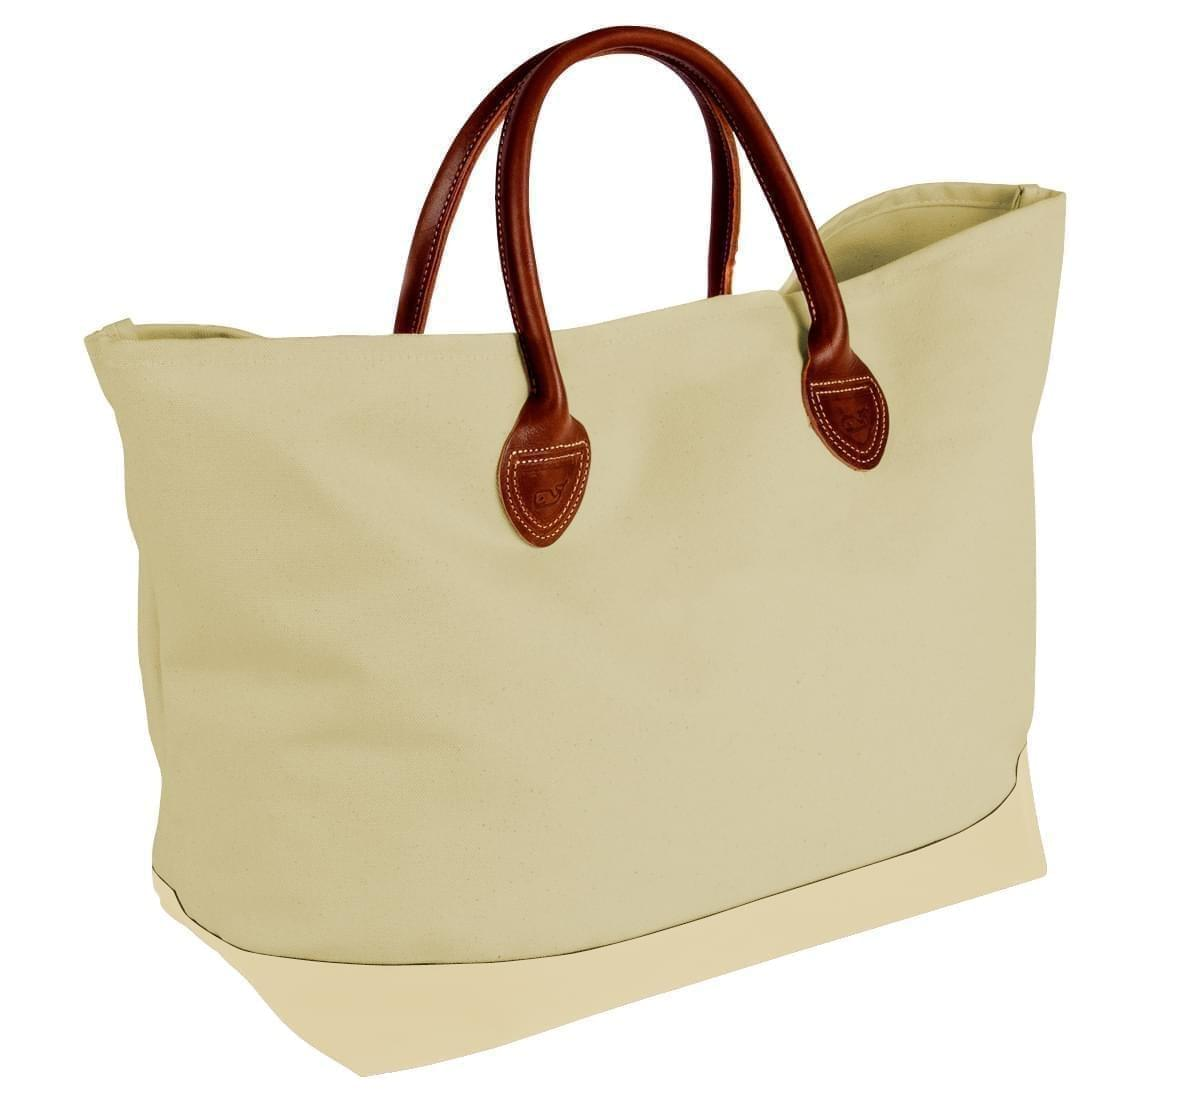 USA Made Canvas Leather Handle Totes, Natural-Natural, 10899-AK9